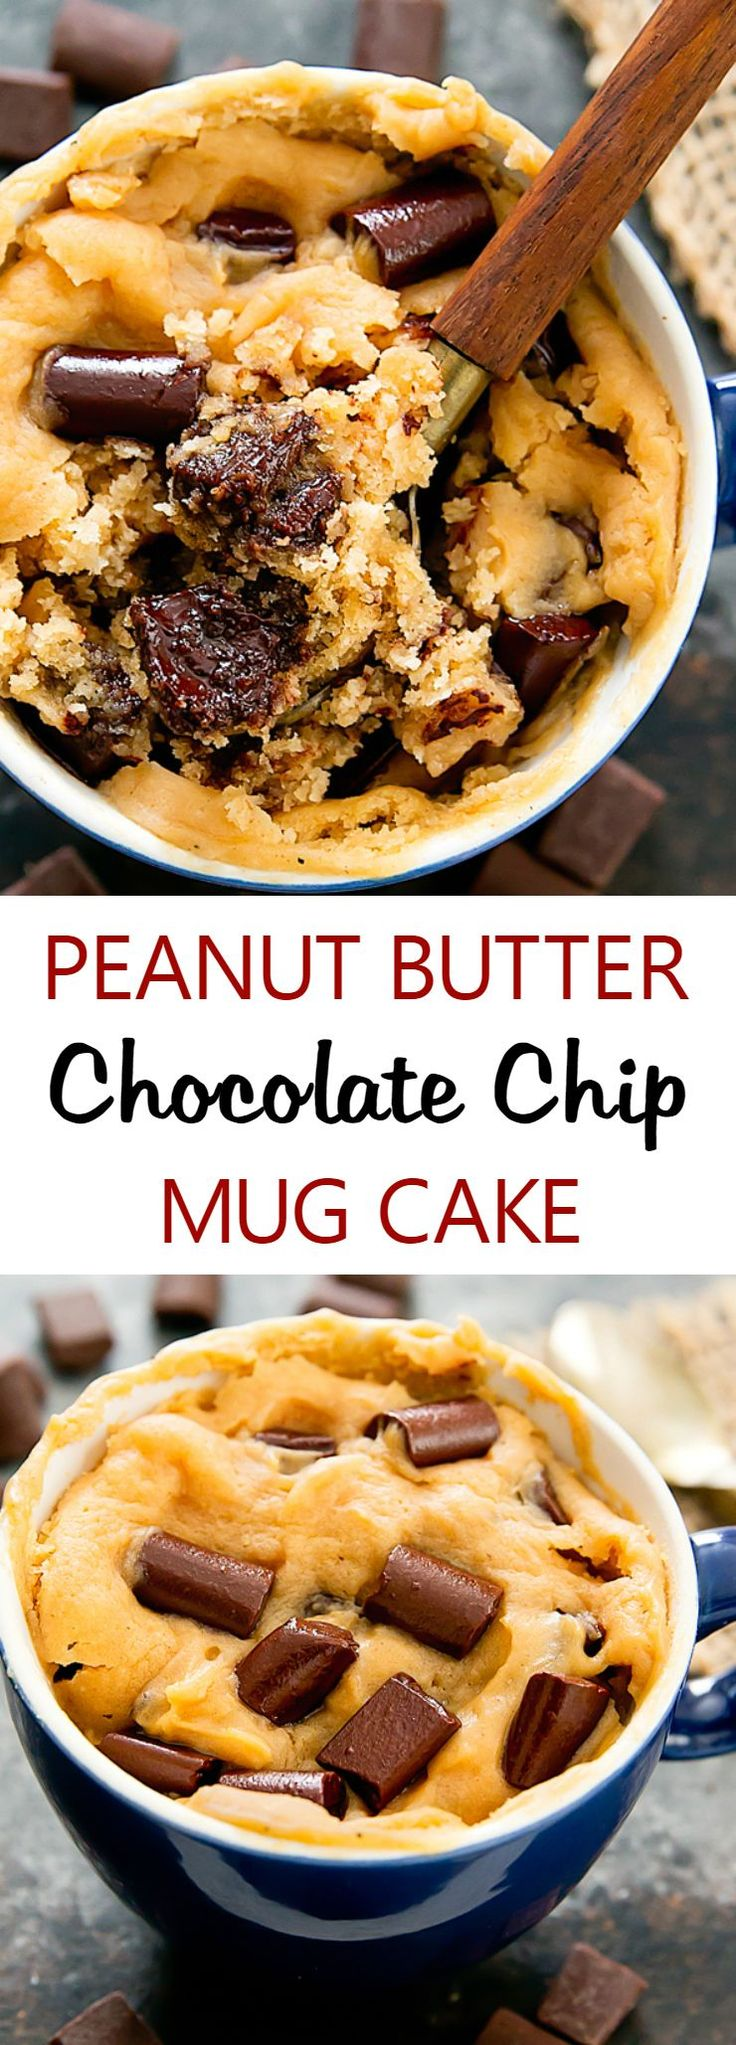 17 Best images about Dessert! on Pinterest | Chocolate chip ...